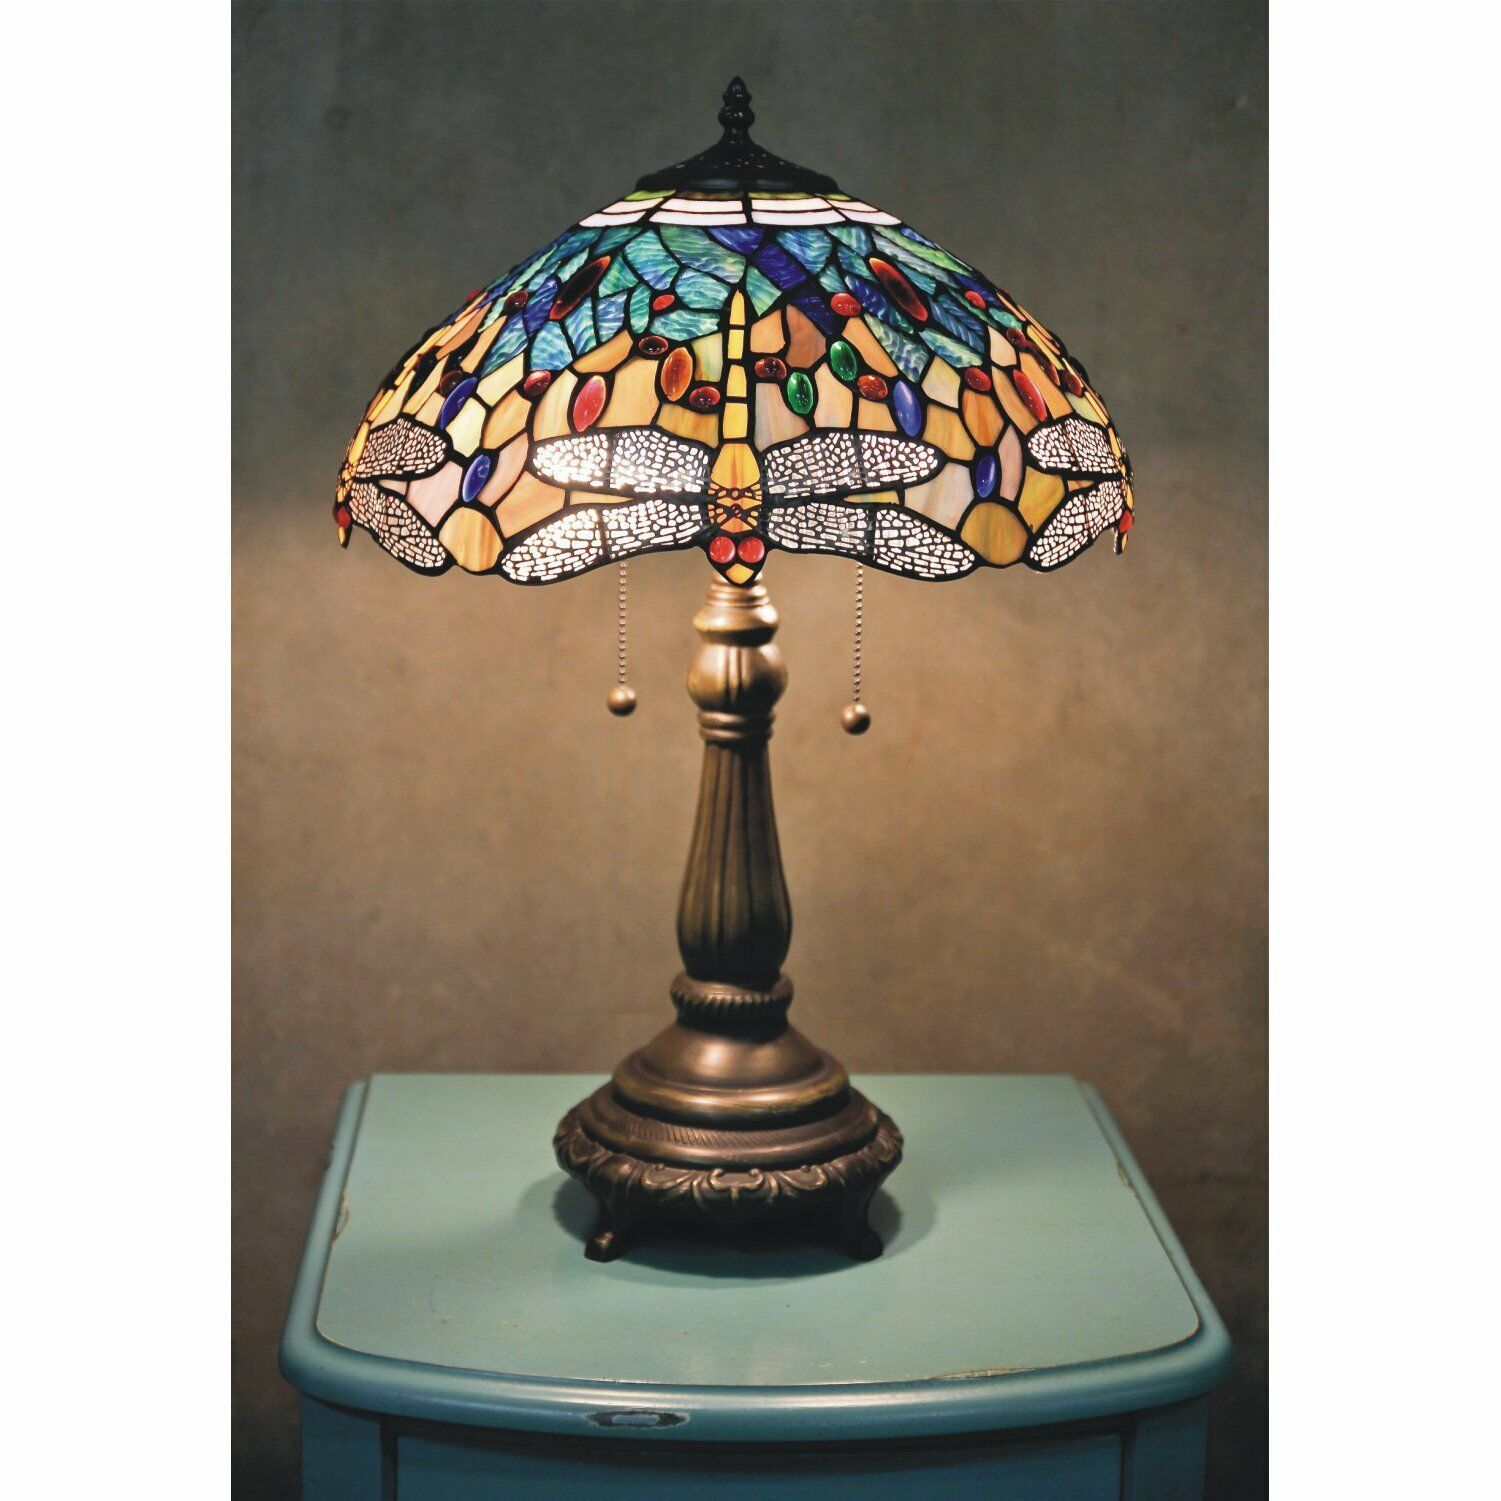 Details About Stained Glass Tiffany Style Yellow Dragonfly Table Lamp 2 Lights 16 Shade Table Lamp Tiffany Style Lamp Metal Table Lamps